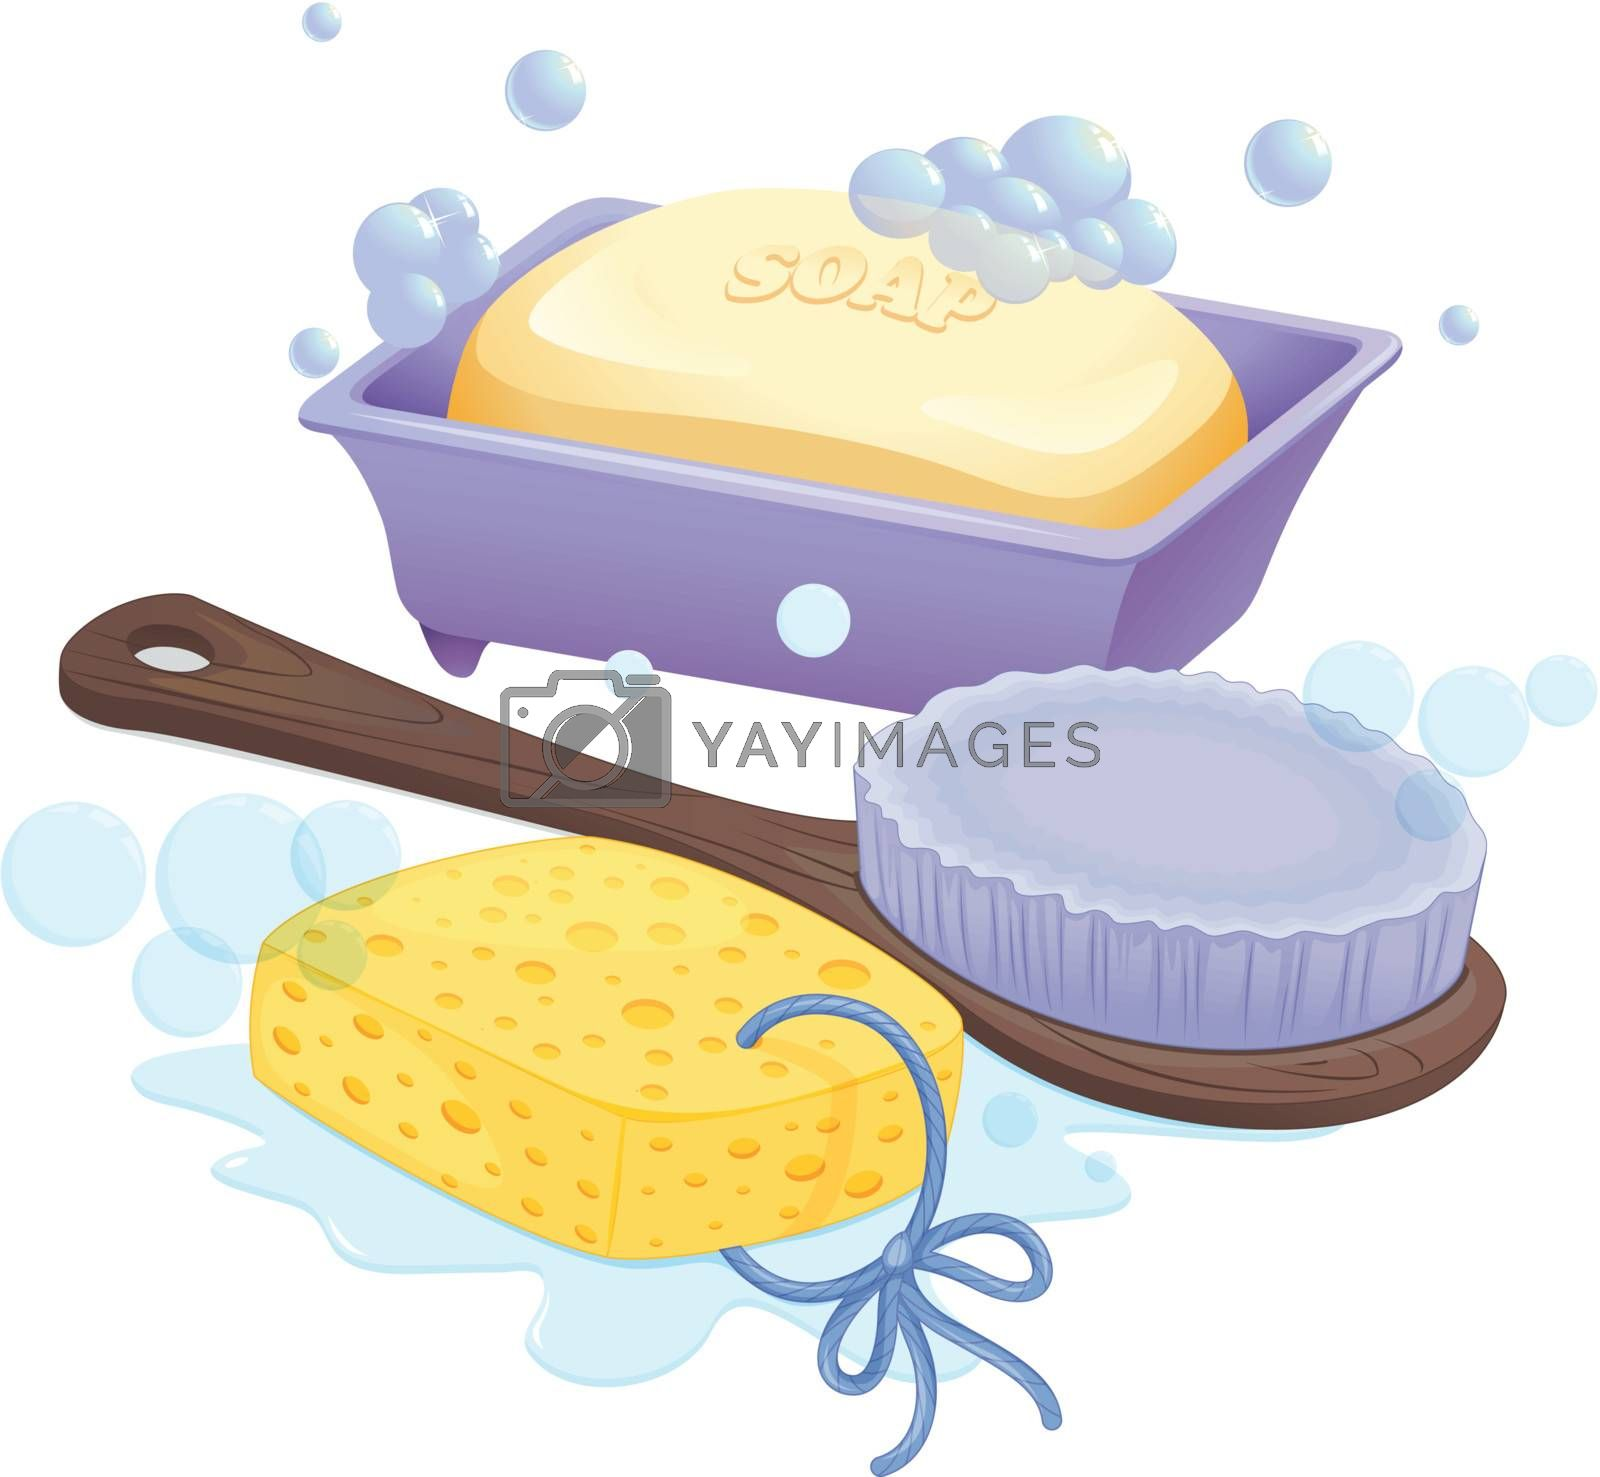 Illustration of a sponge, a brush and a soap on a white background